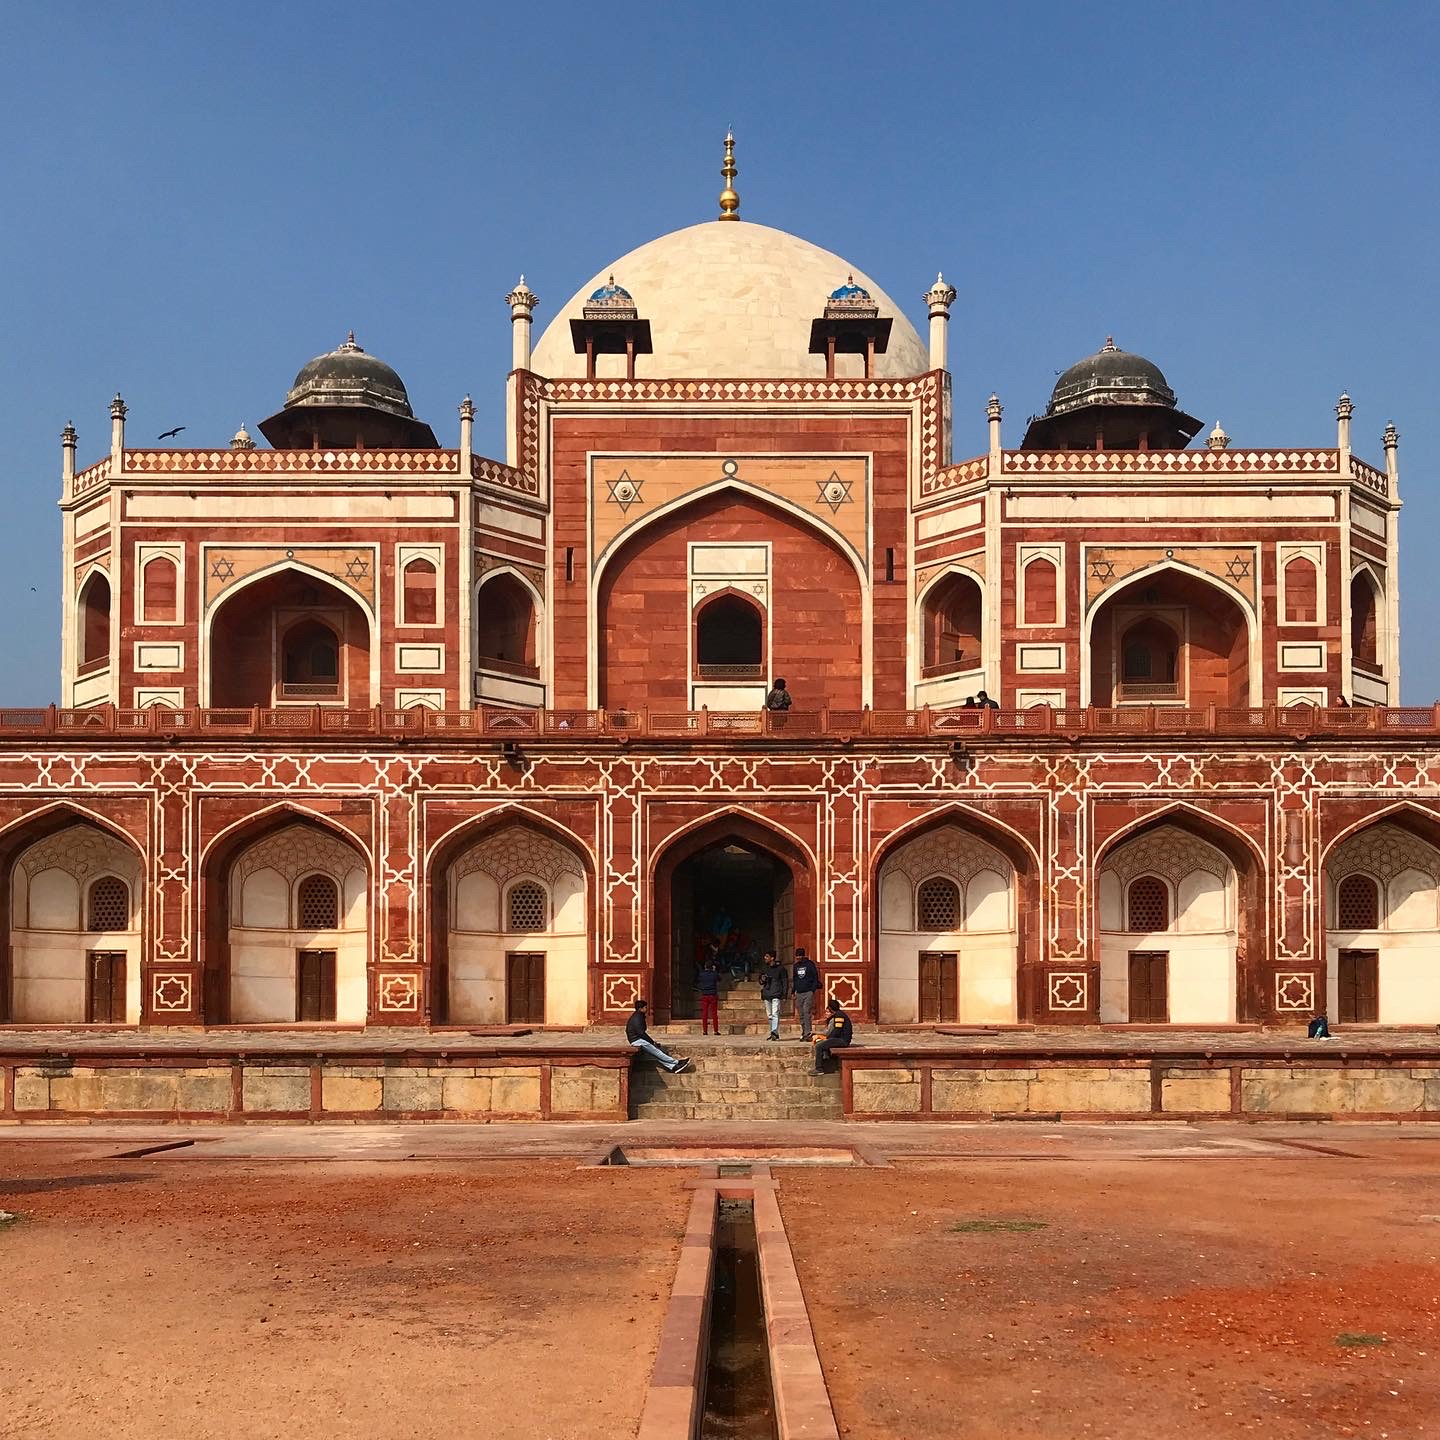 Side view of Humayun's tomb highly symetrical it is seen the same from all sides